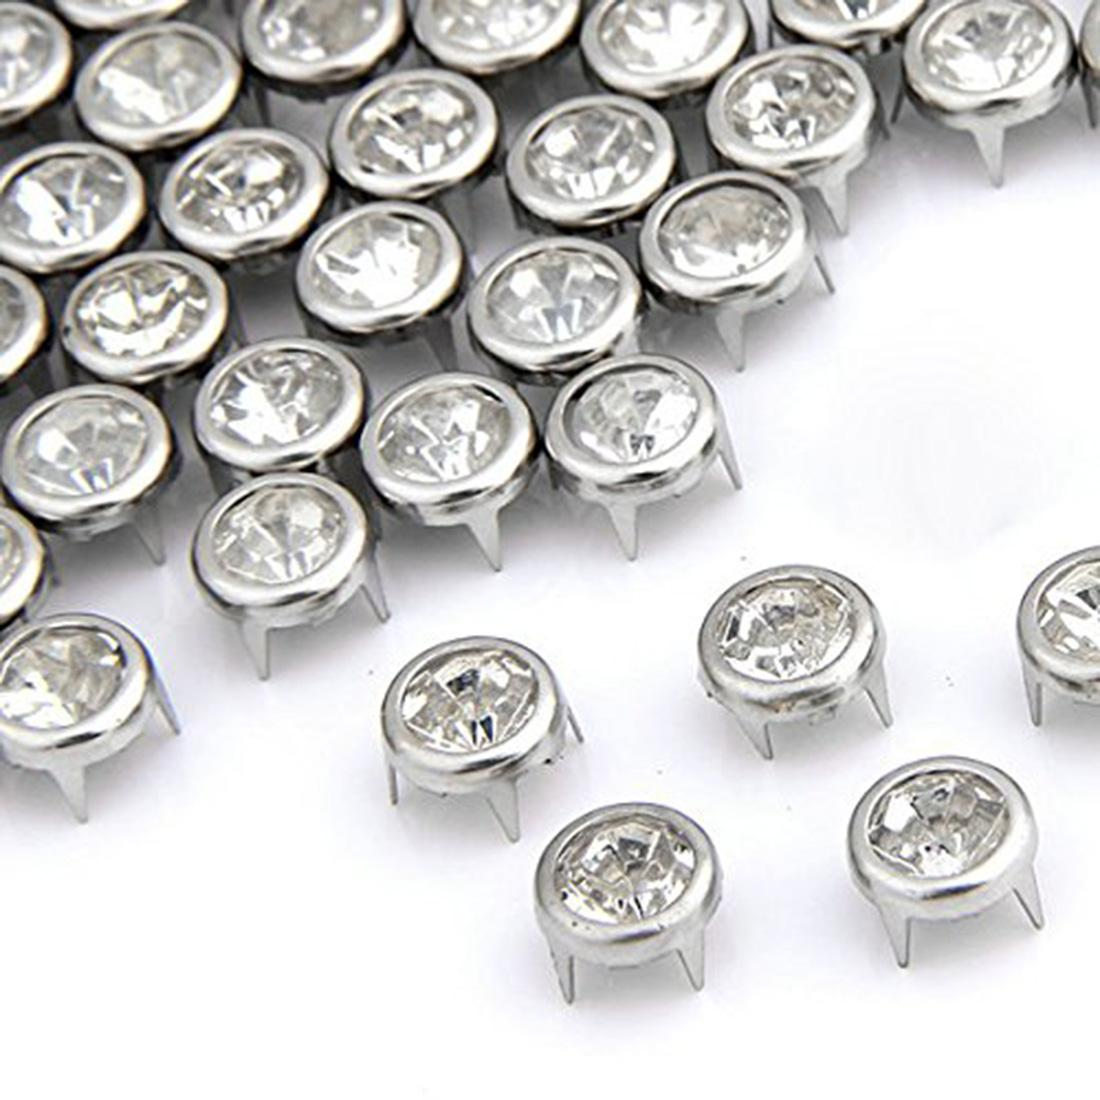 New Style Punk Spikes Studs Flat Rapid Cone Decorative Rivets DIY Set 7mm For Clothes Clothing Bag Shoes Leather Rhinestone